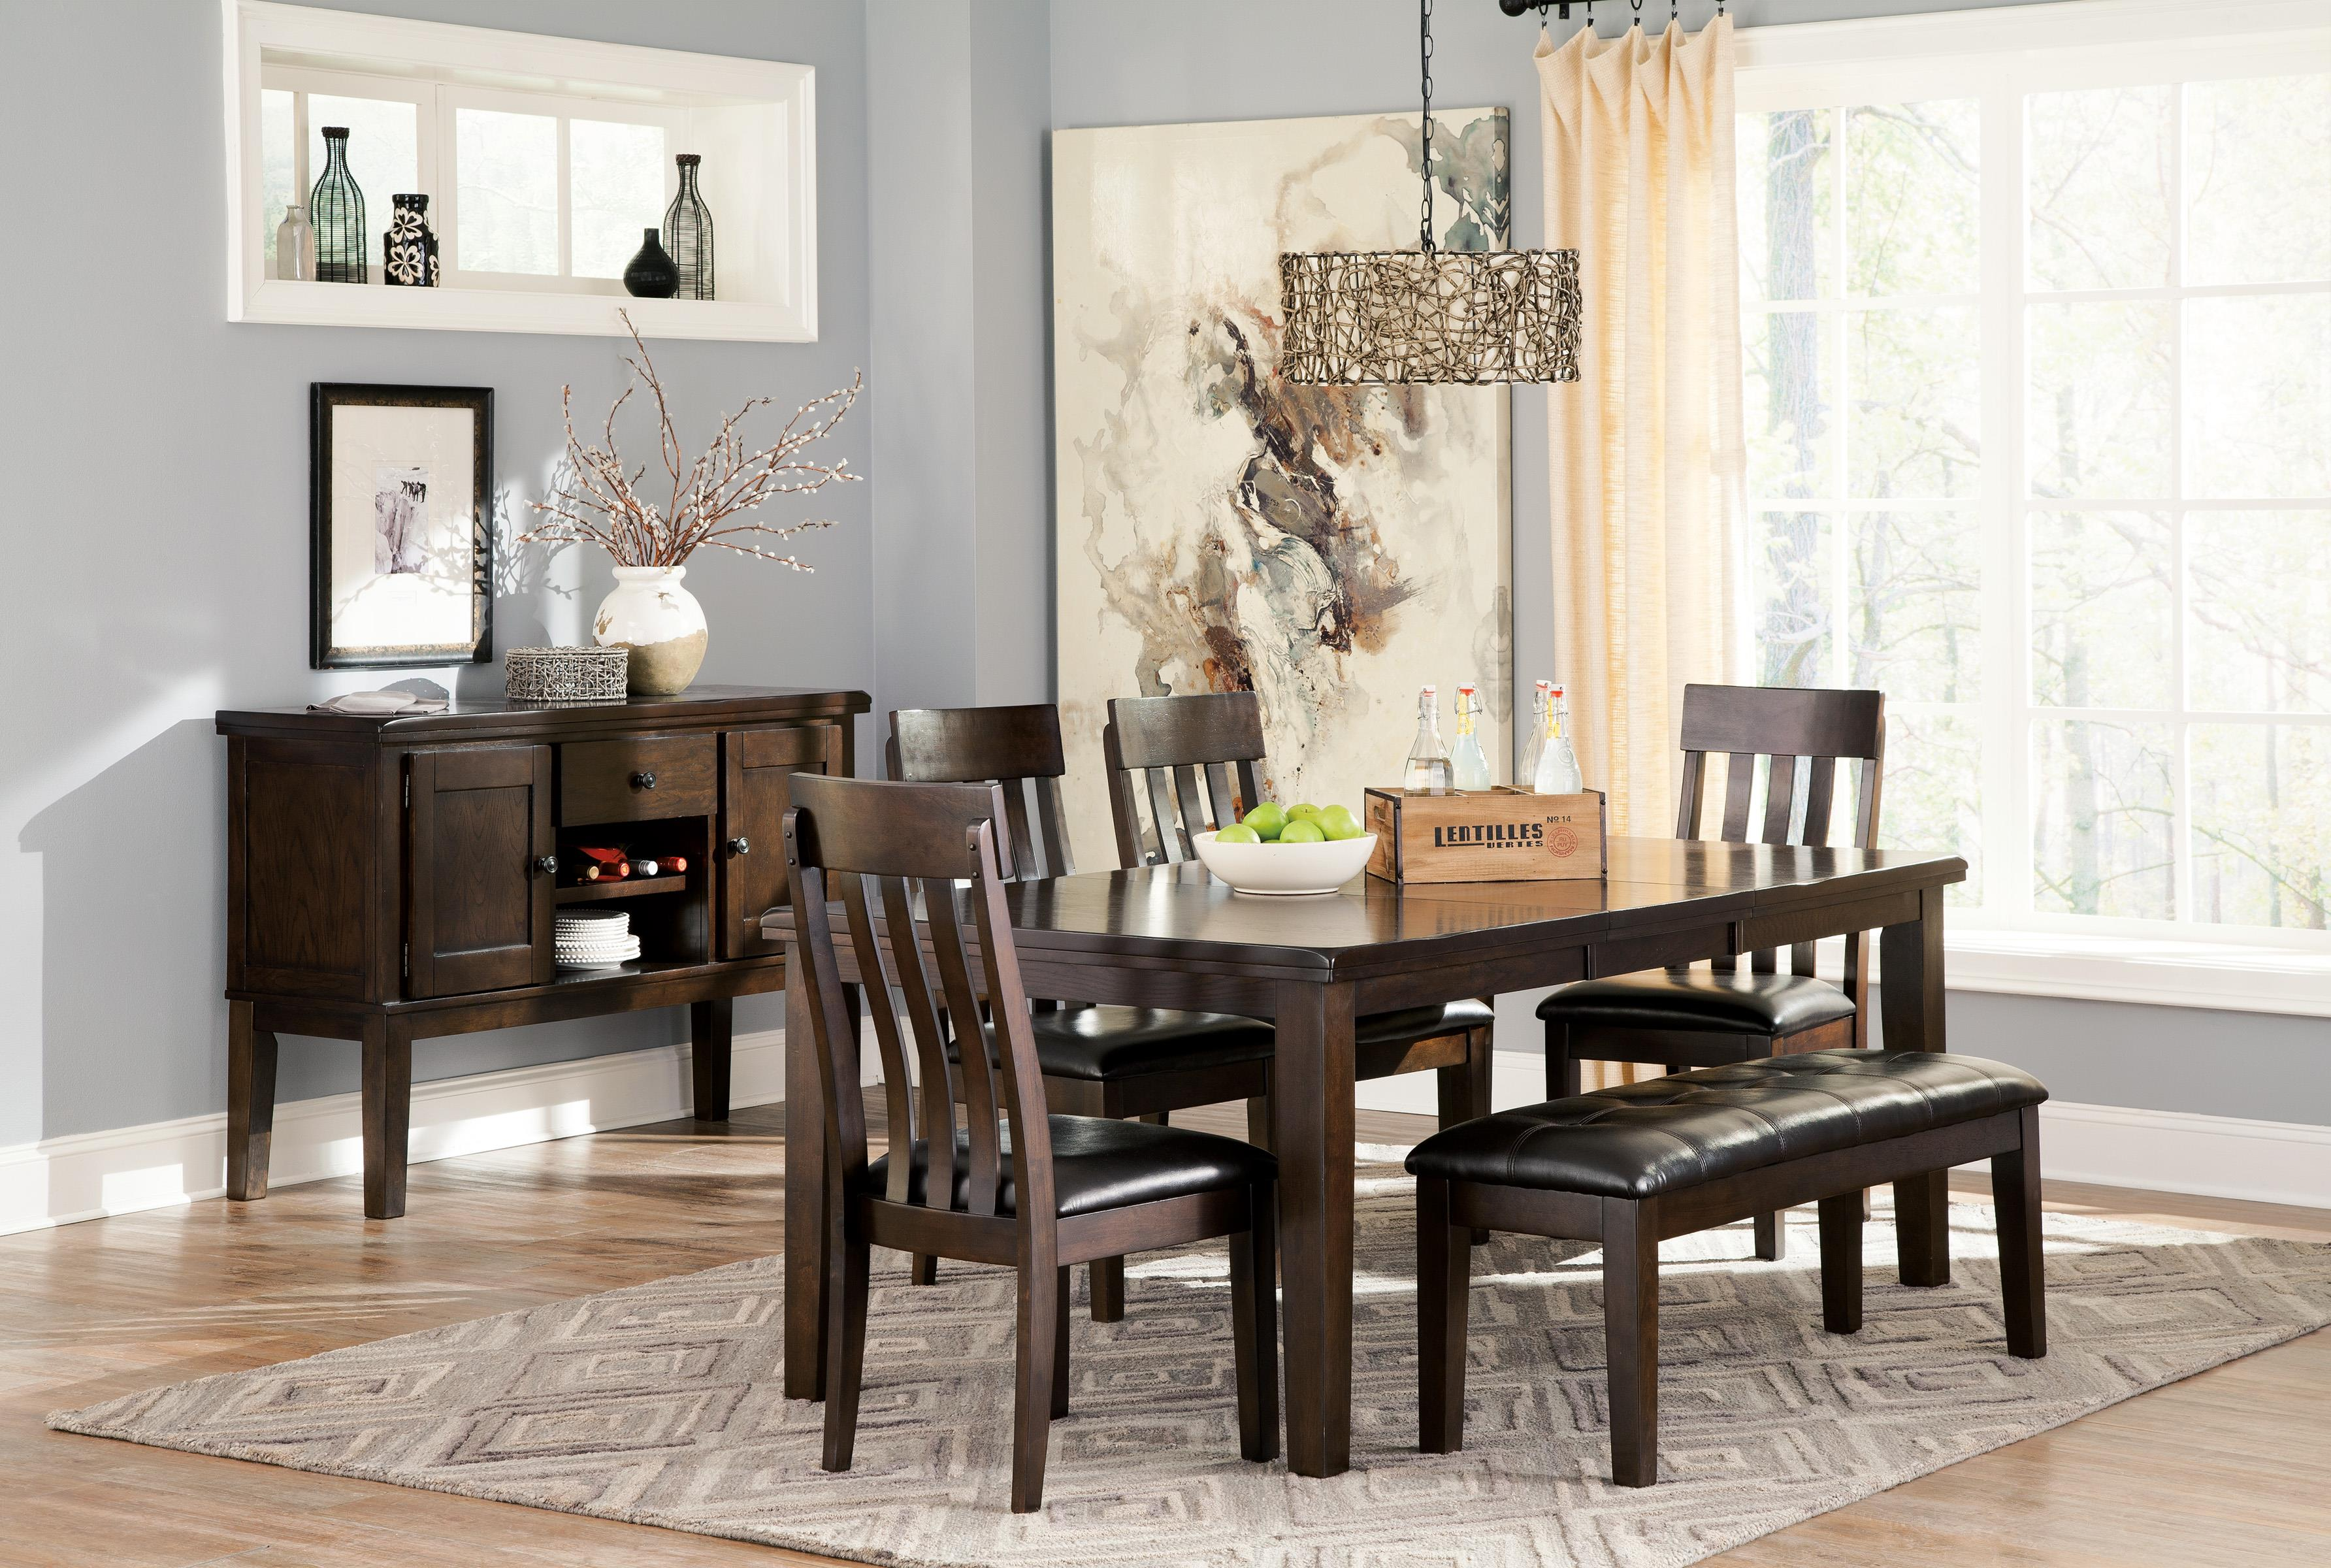 Haddigan Formal Dining Room Group by Signature Design by Ashley at Northeast Factory Direct